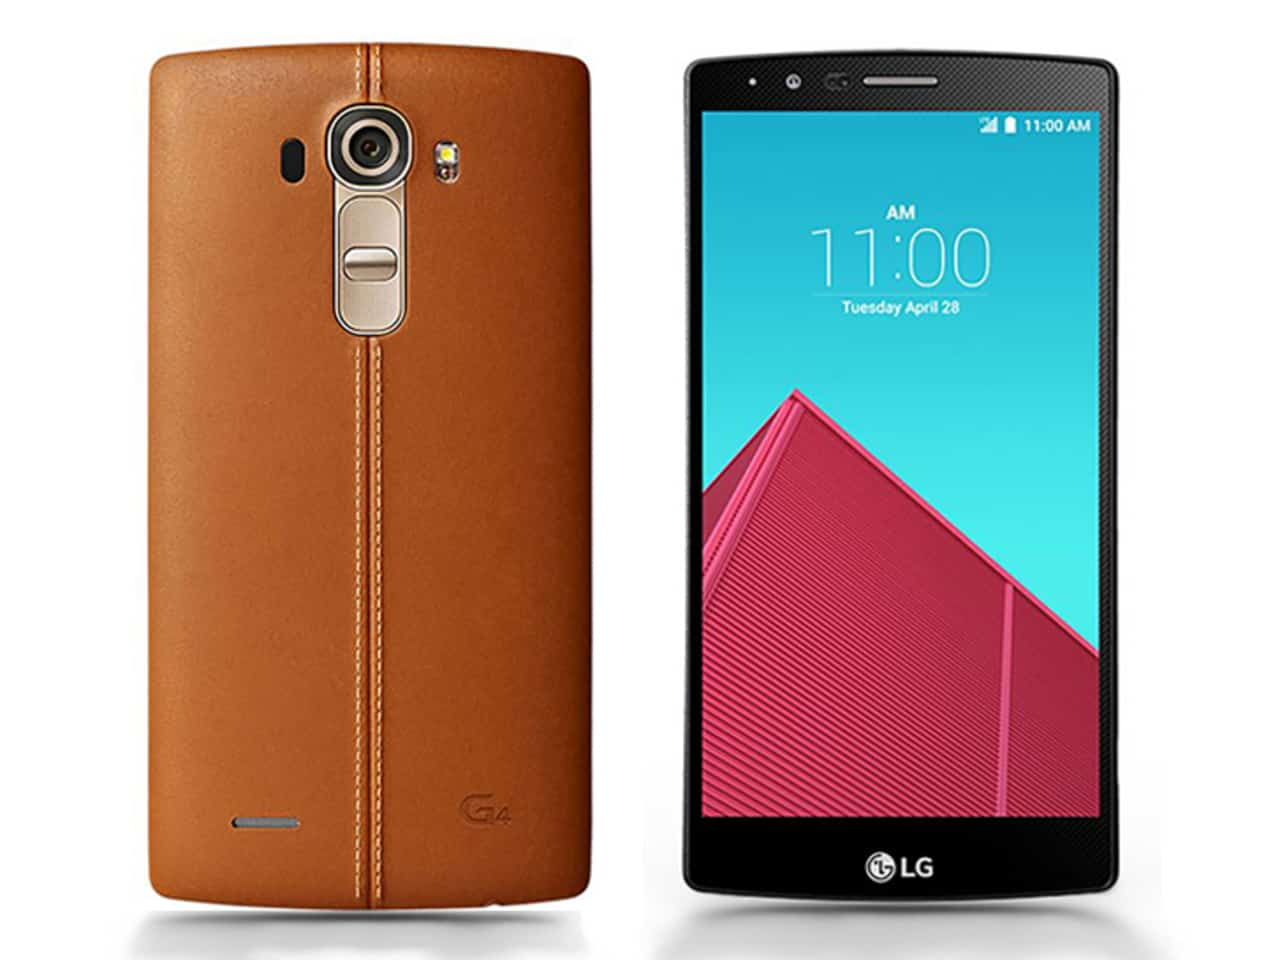 How to Install TWRP Recovery on LG G4. 1